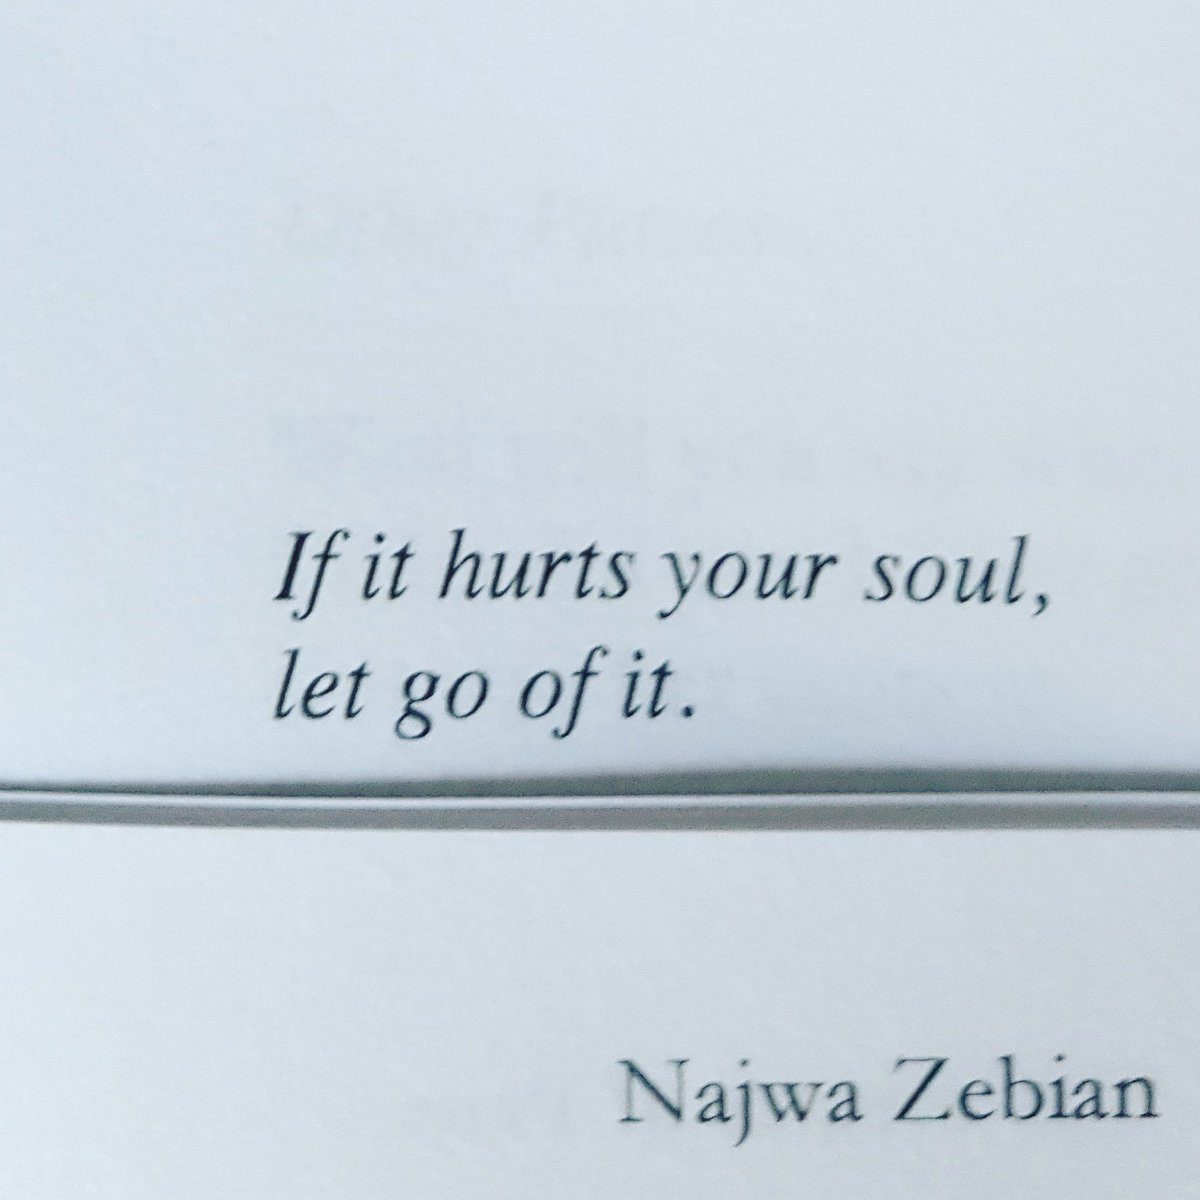 Letting go of hurt